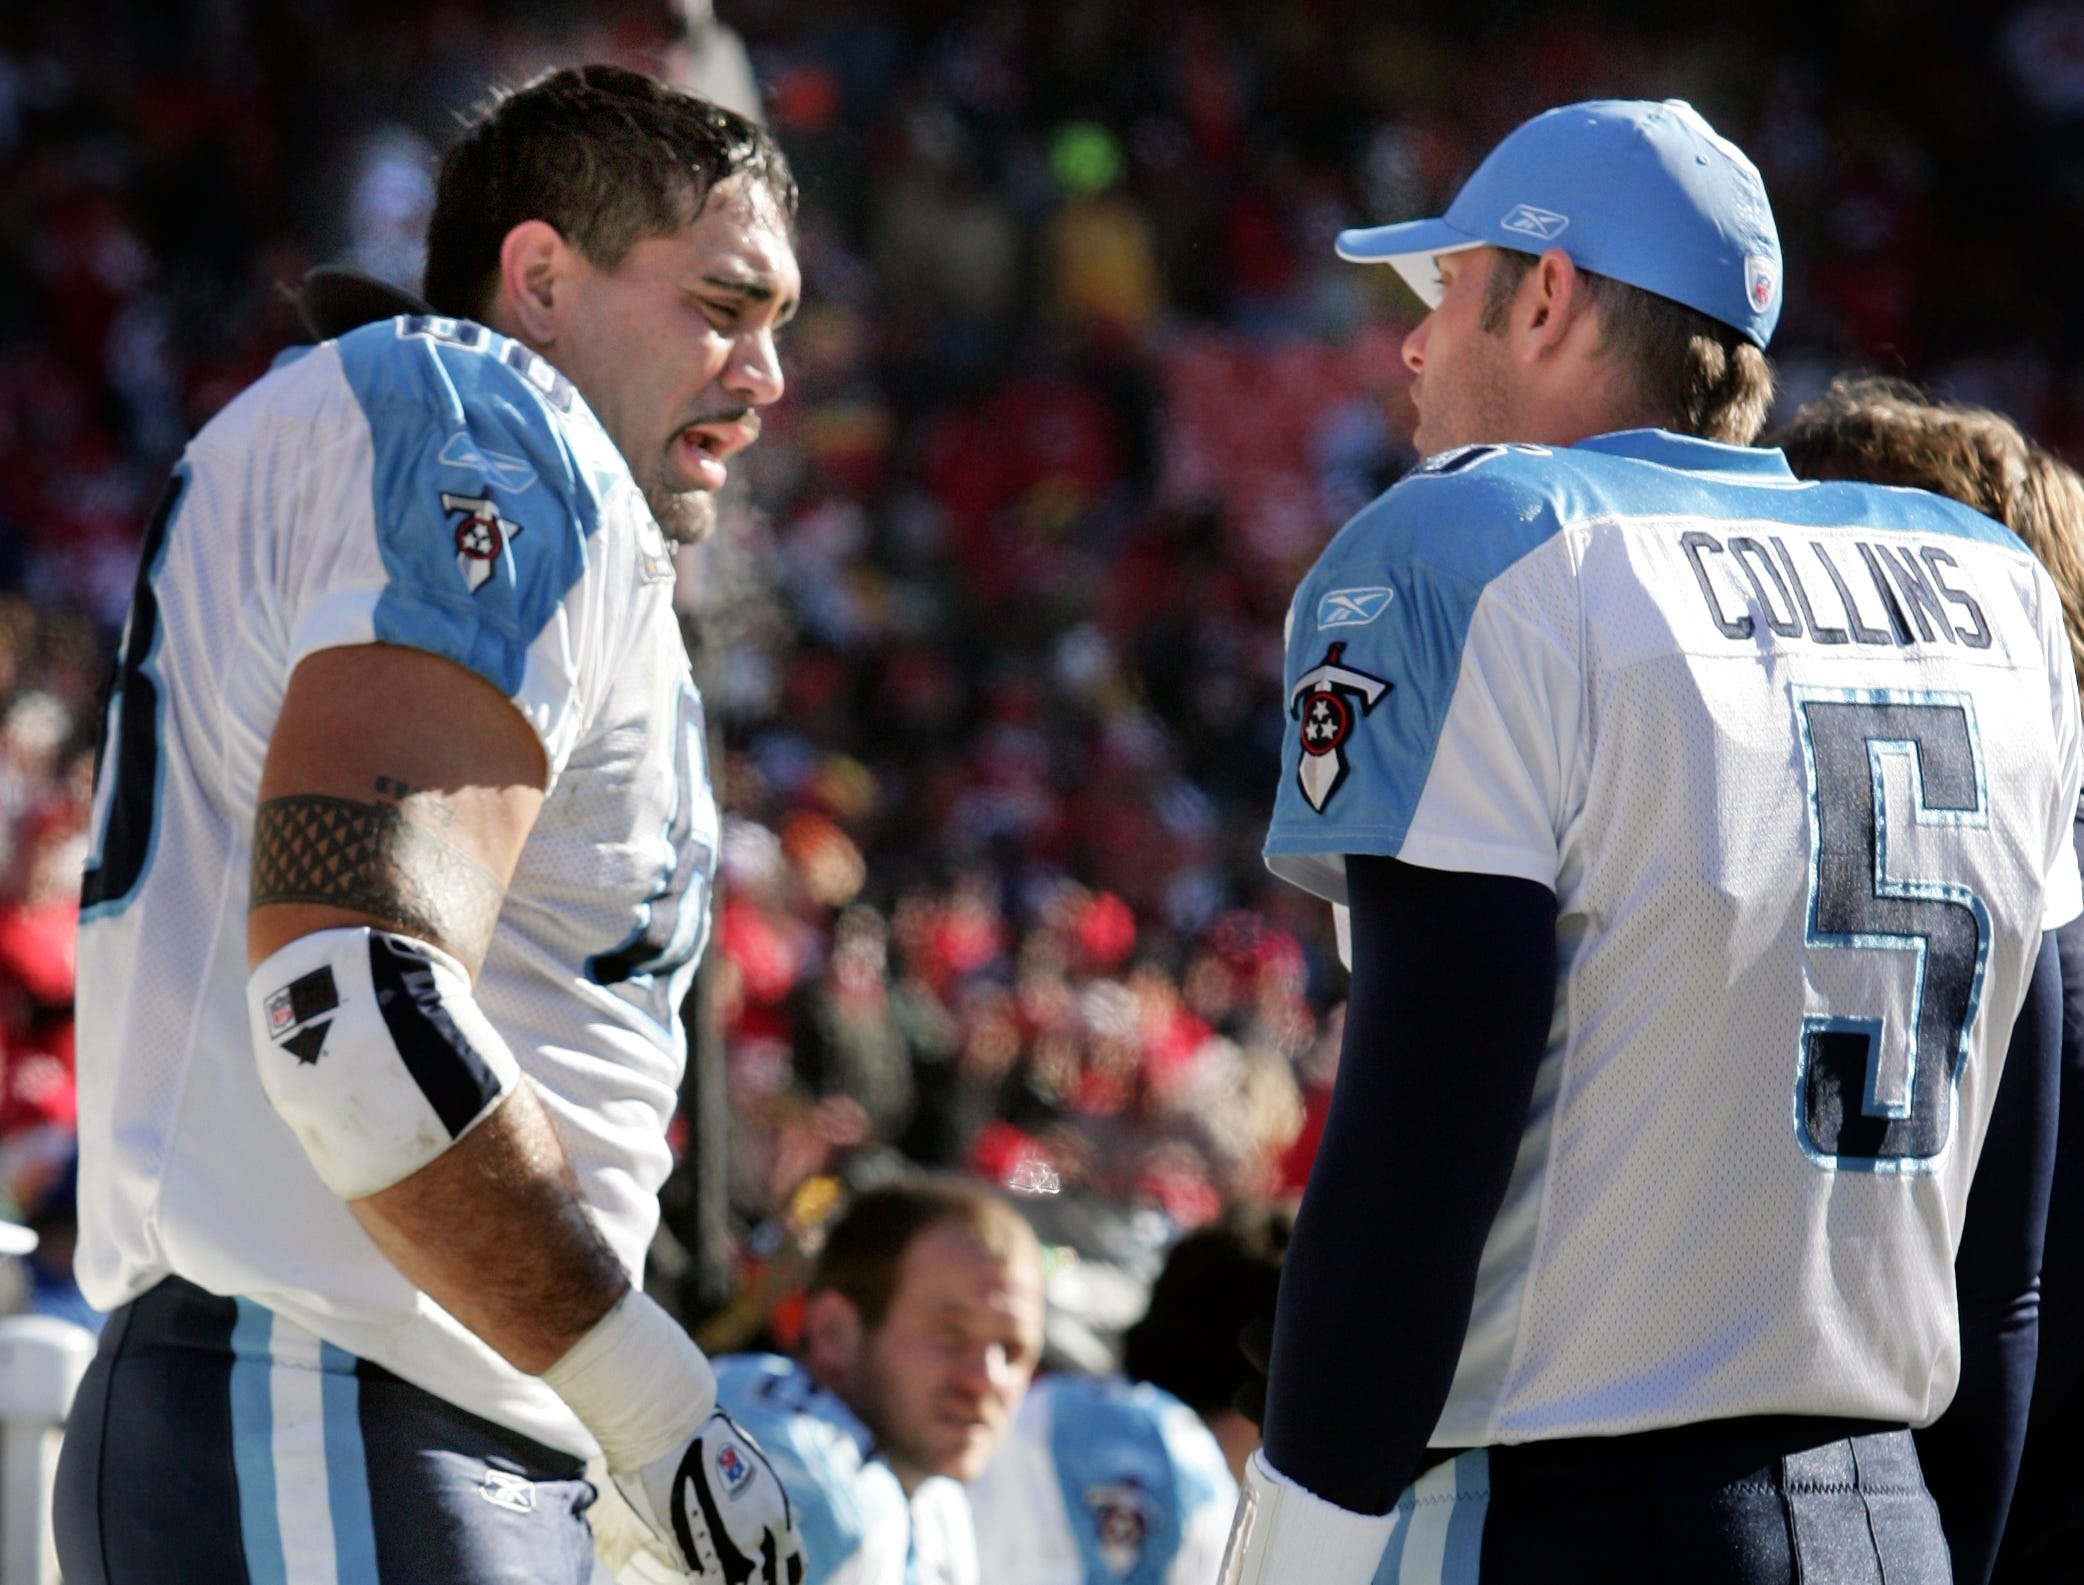 Tennessee Titans' Kevin Mawae (68) talks with teammate Kerry Collins (5) on the sideline after Mawae injured himself in during their game against the Chiefs at Arrowhead Stadium in Kansas City Mo., on December 16, 2007